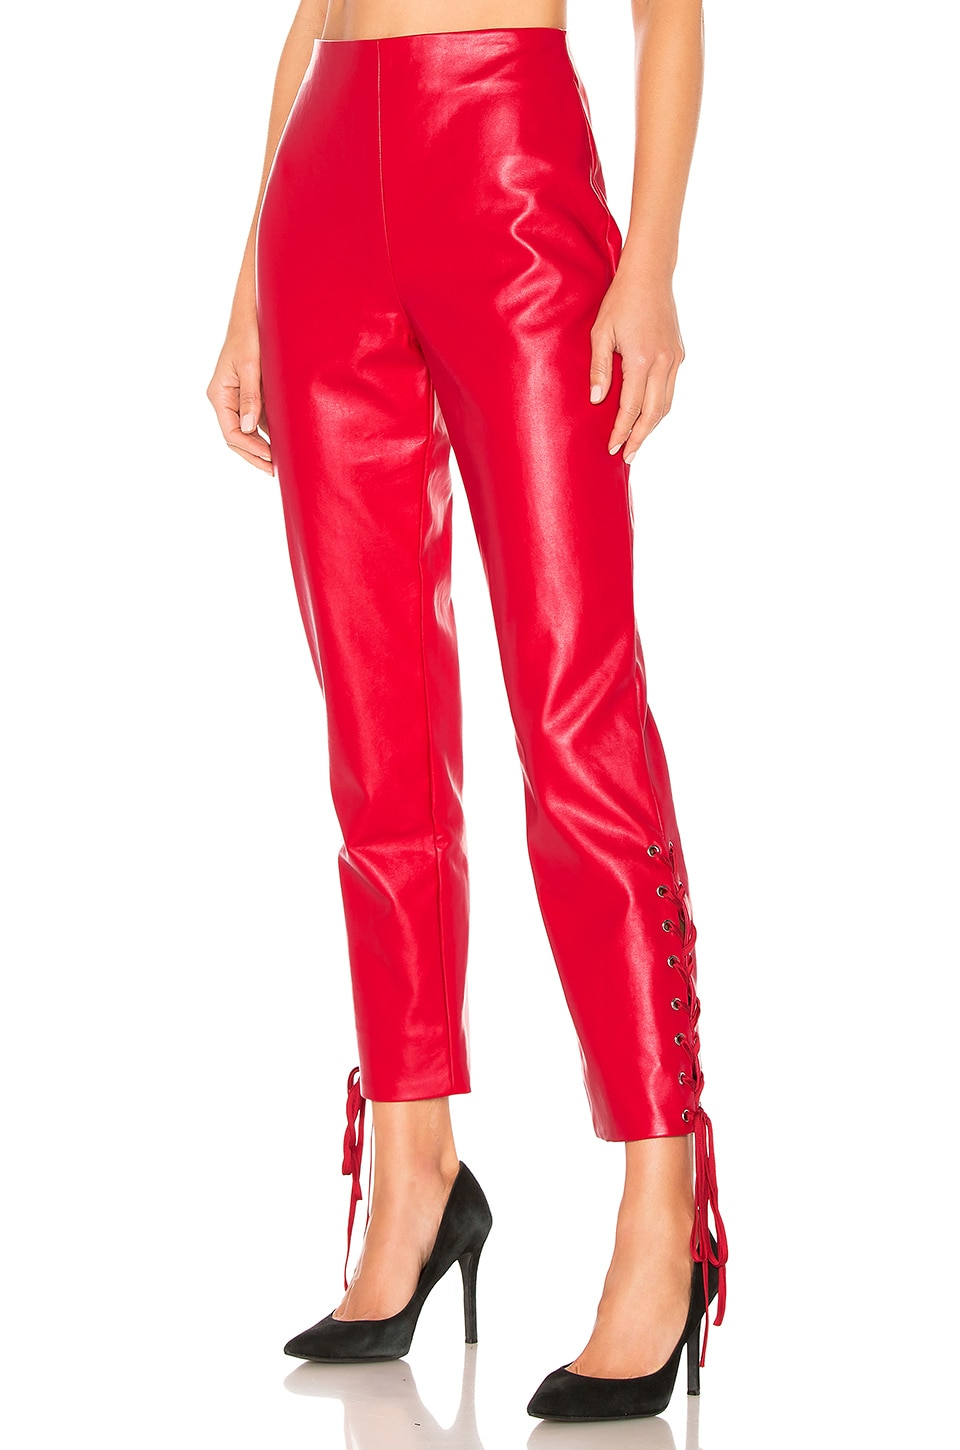 Lovers + Friends Zed Pant in Cherry Red